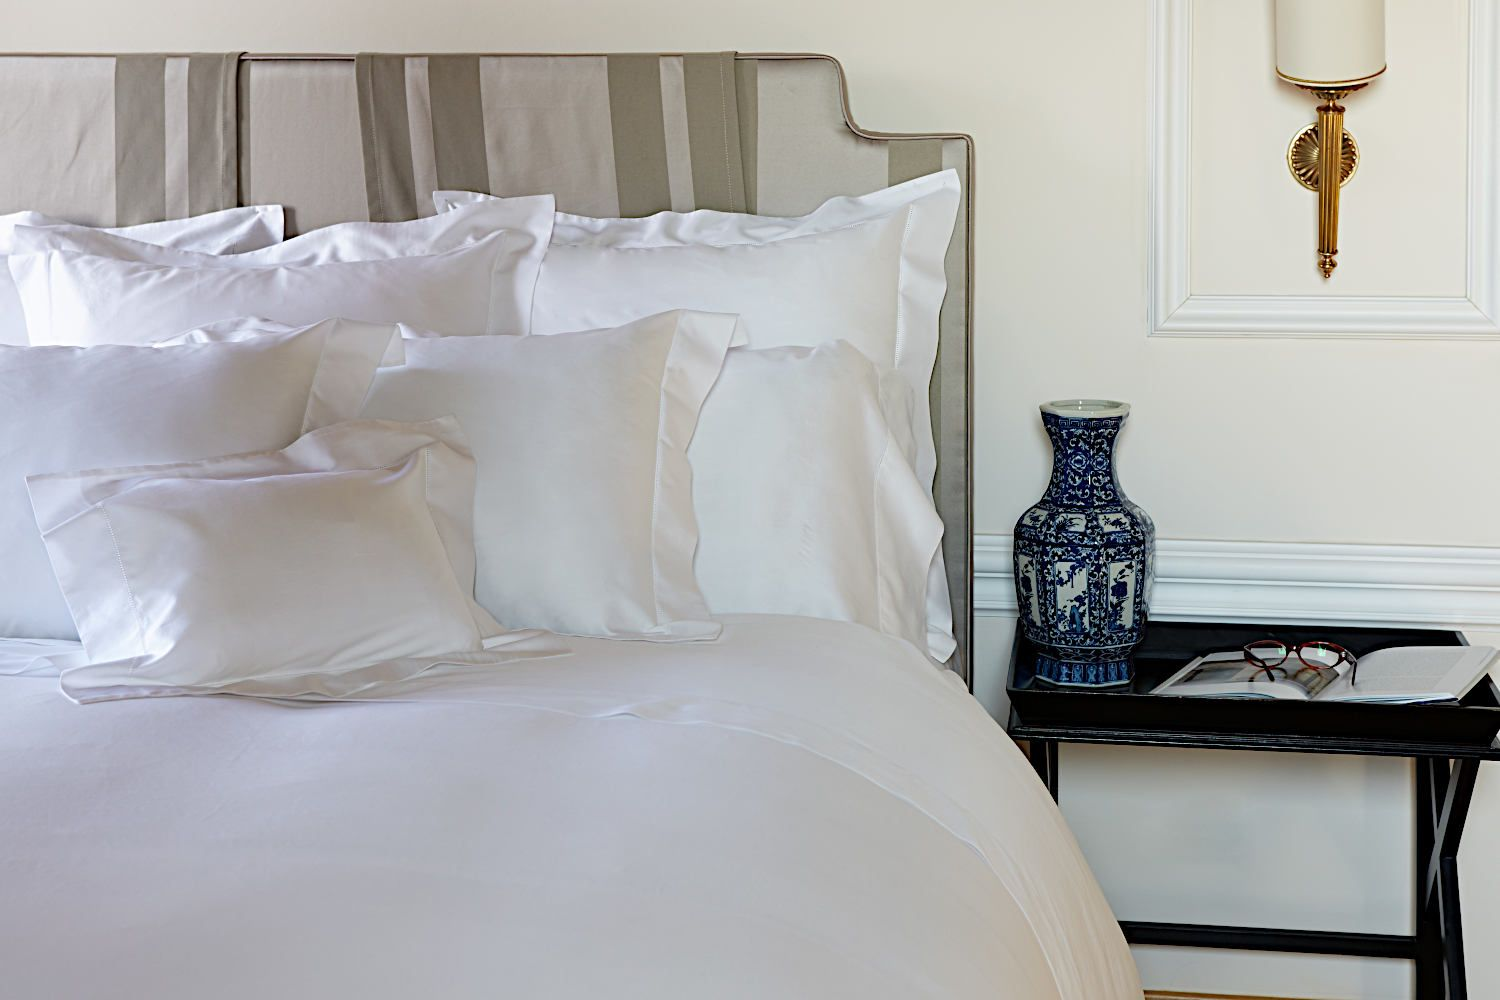 a84c404eb6acd9aa7fc1494f276b5cb1 - How To Get Duvet Cover To Stay In Place